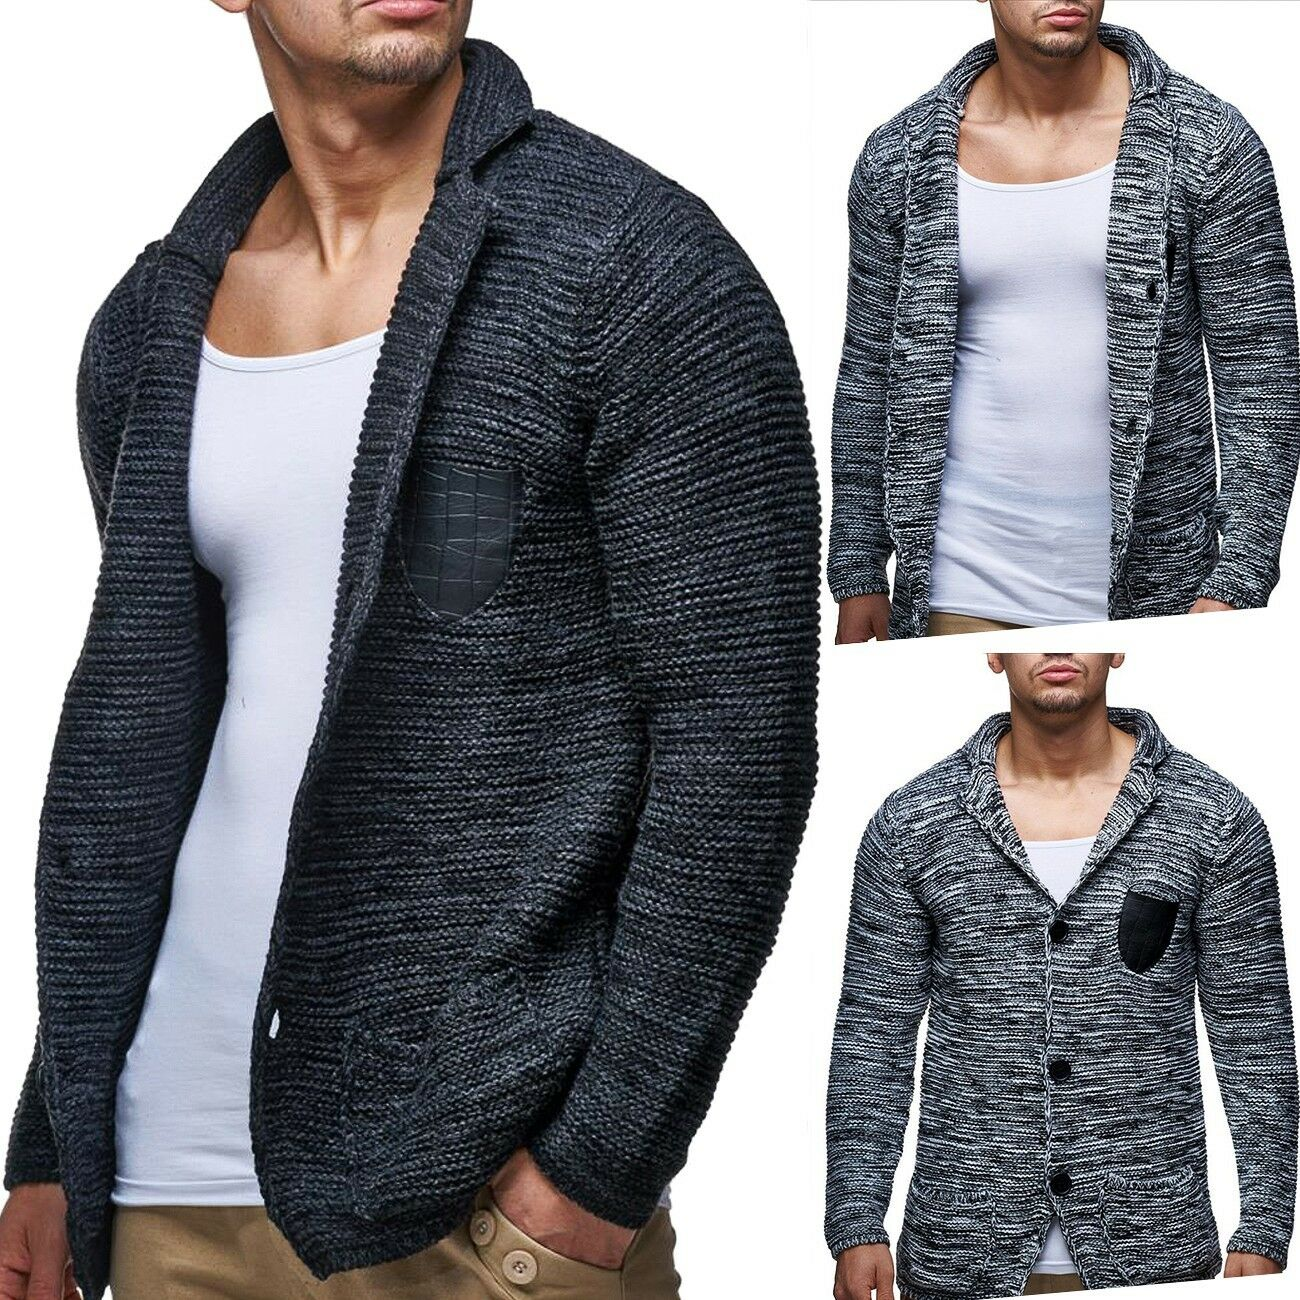 herren strickjacke cardigan grobstrick pullover elegant verschiedene farben eur 39 99. Black Bedroom Furniture Sets. Home Design Ideas